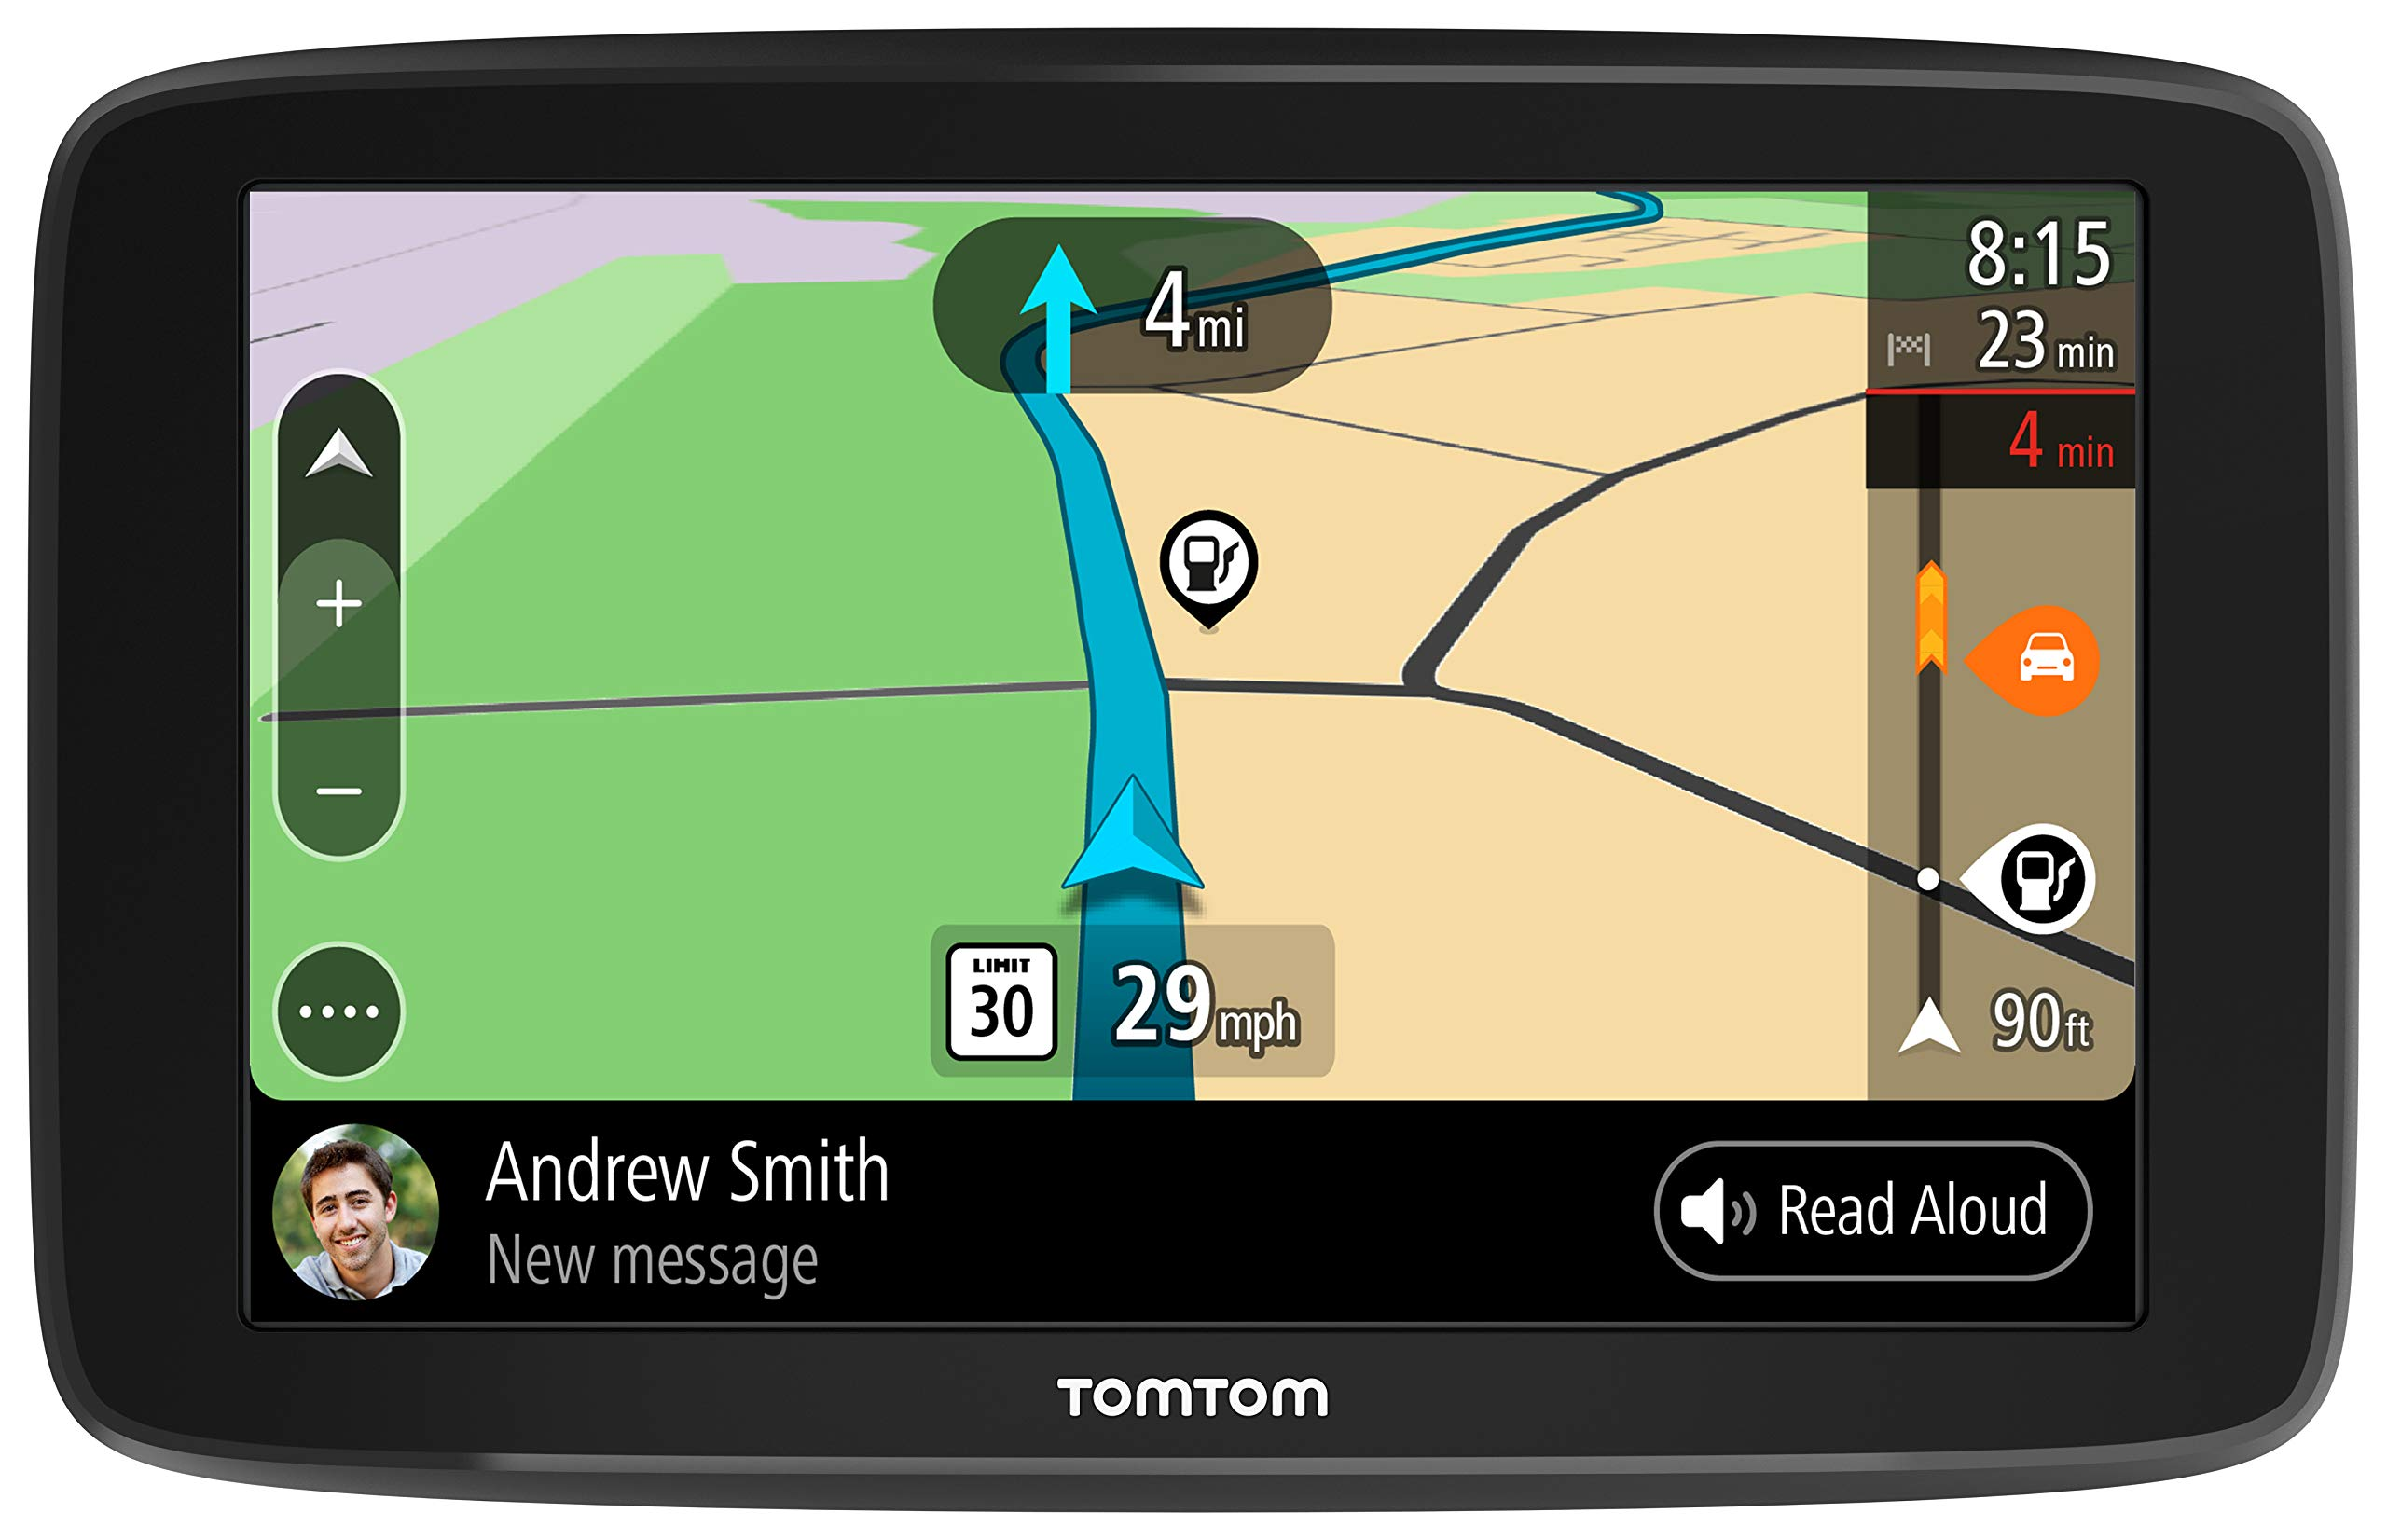 TomTom Smart Car GPS Navigation Go Comfort 6, with Updates via WiFi, Lifetime Traffic and Maps (Us-Can-Mex), Roadtrips